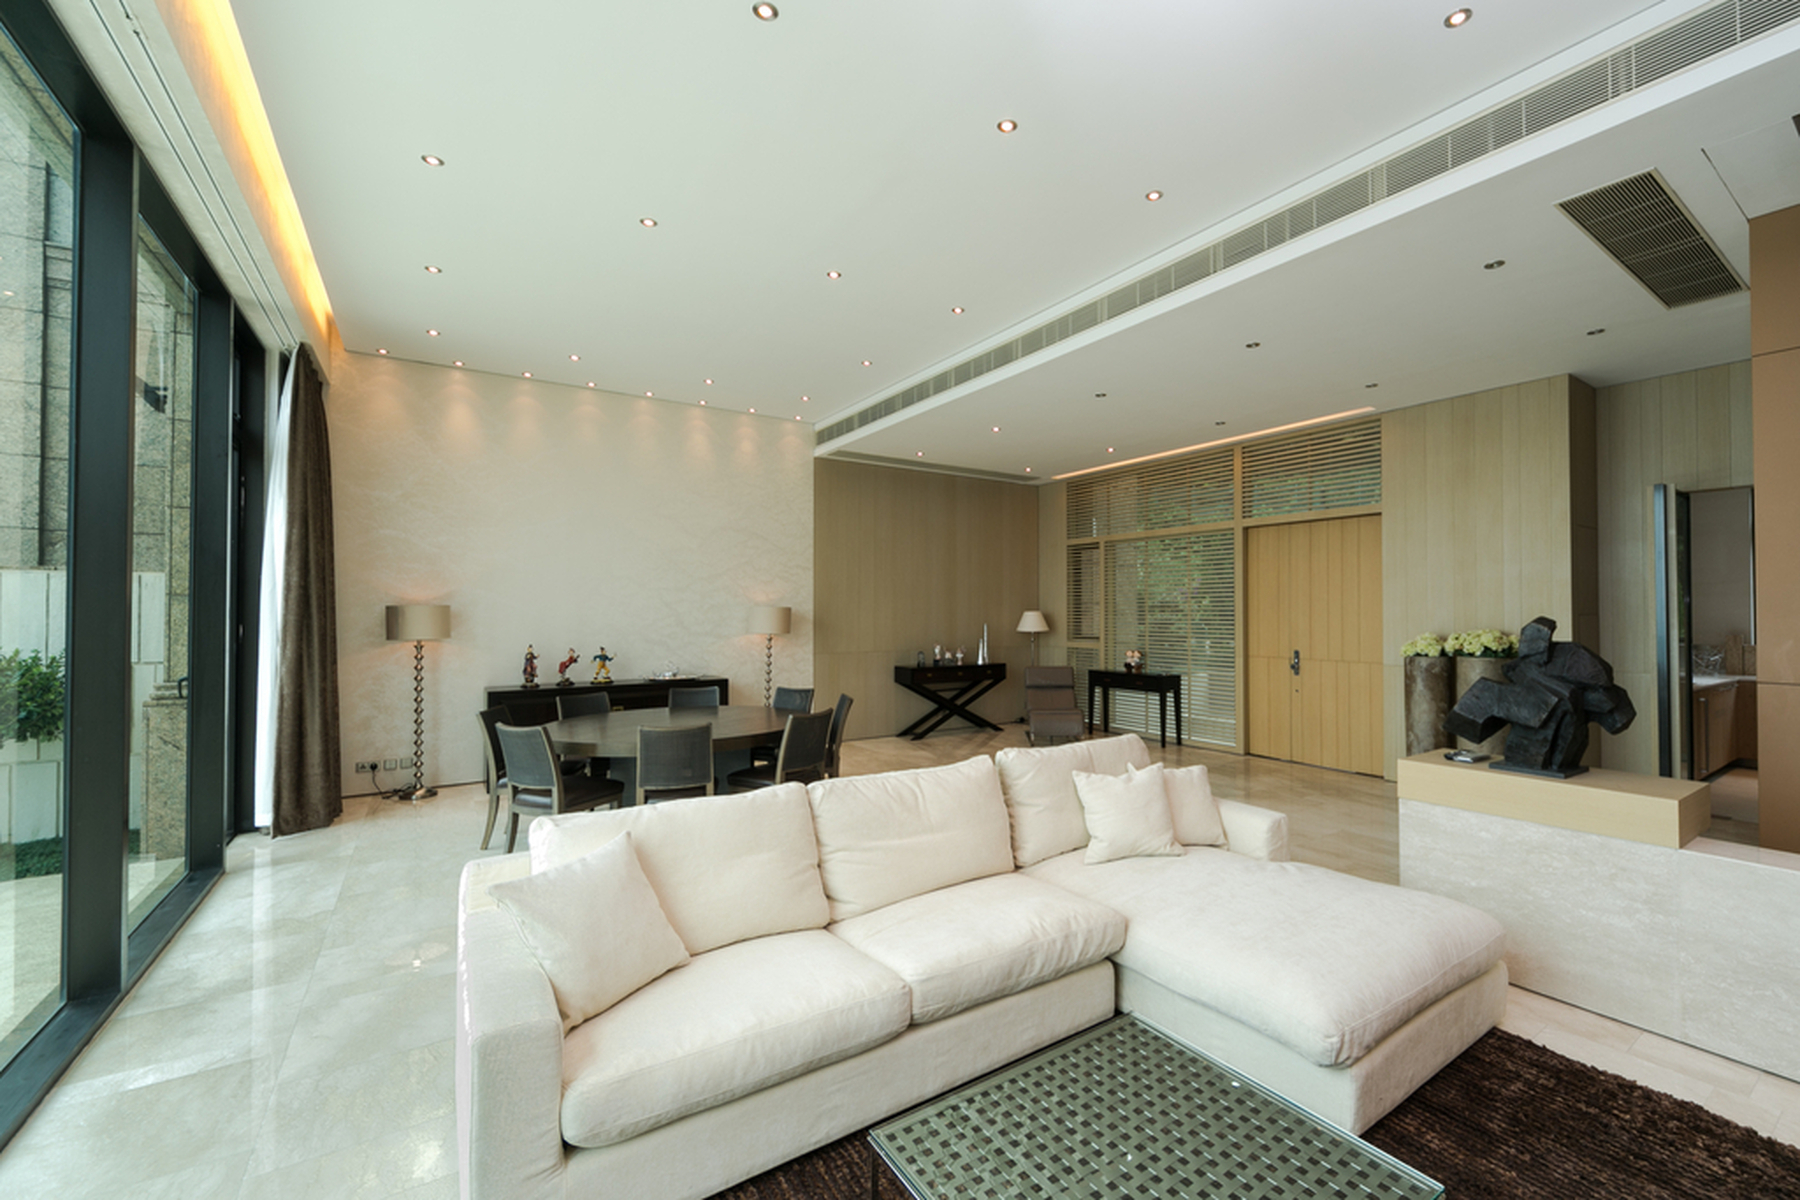 Casa Unifamiliar Adosada por un Venta en Severn 8 The Peak, Hong Kong